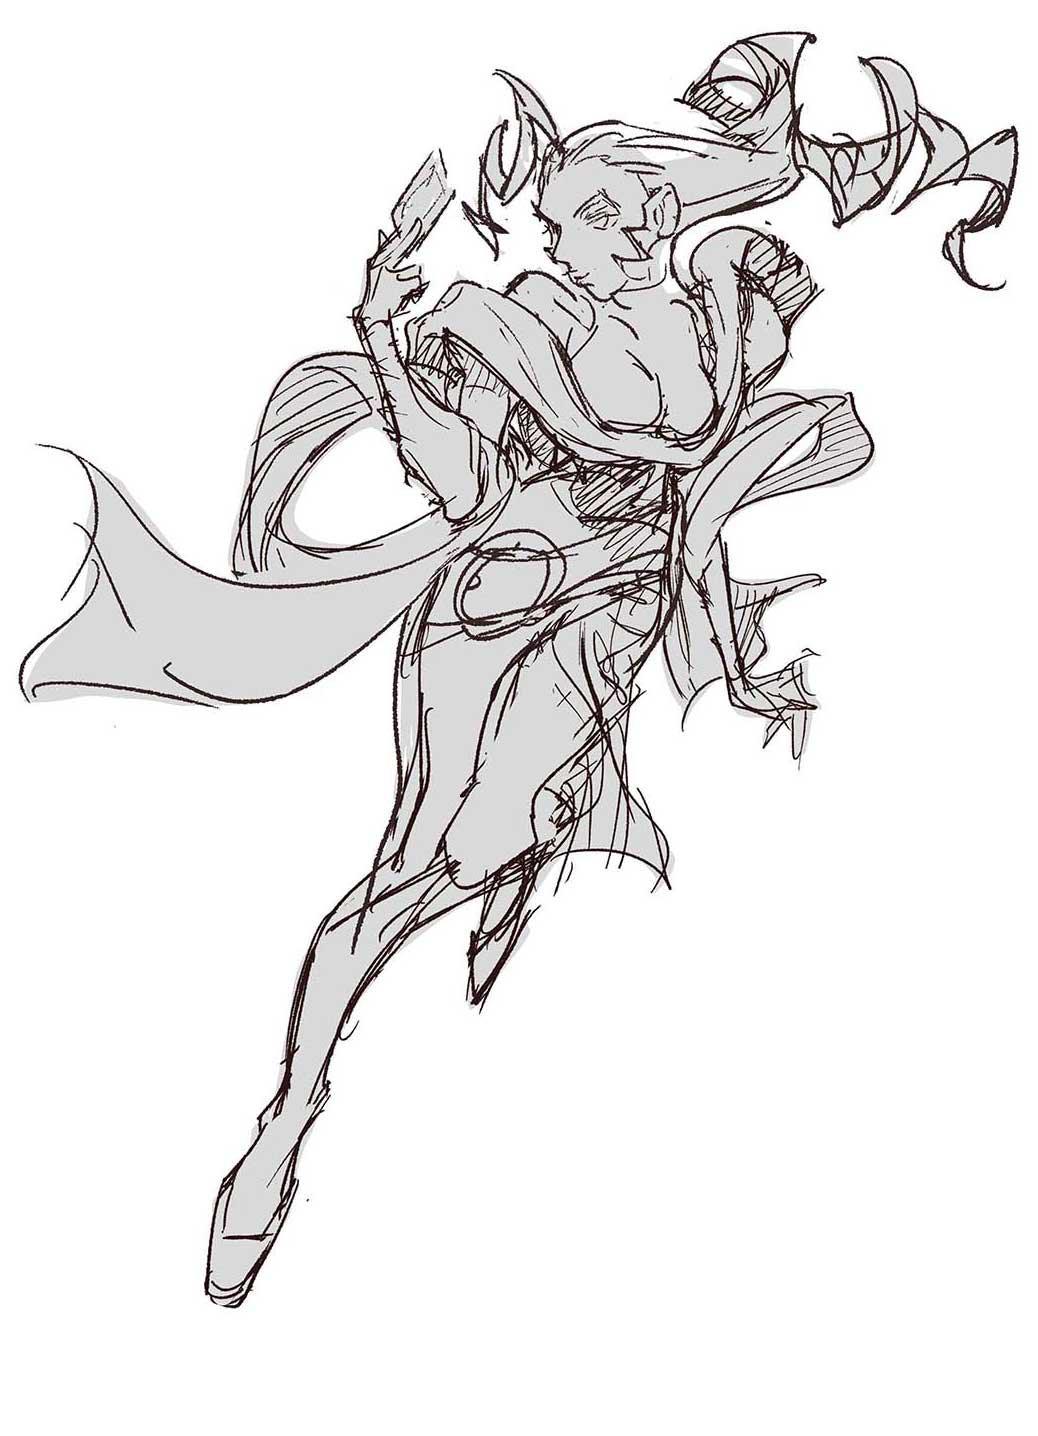 New Character Rough Sketches 4 out of 8 image gallery